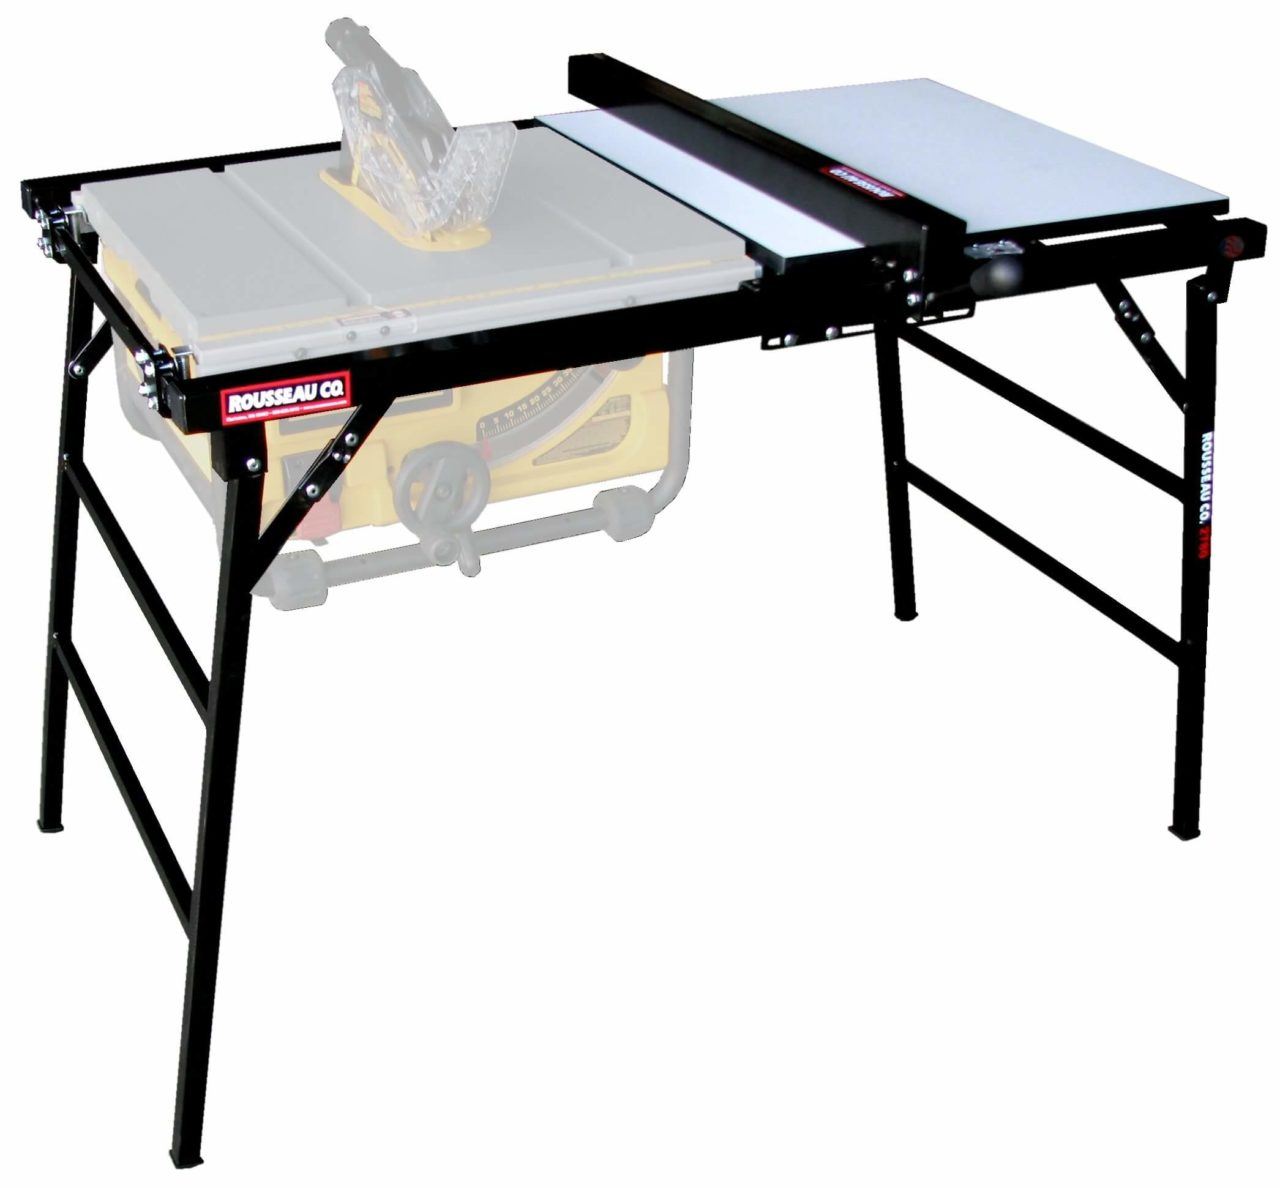 Rousseau 2780 Table Saw Stand - Best For Portable Table Saws